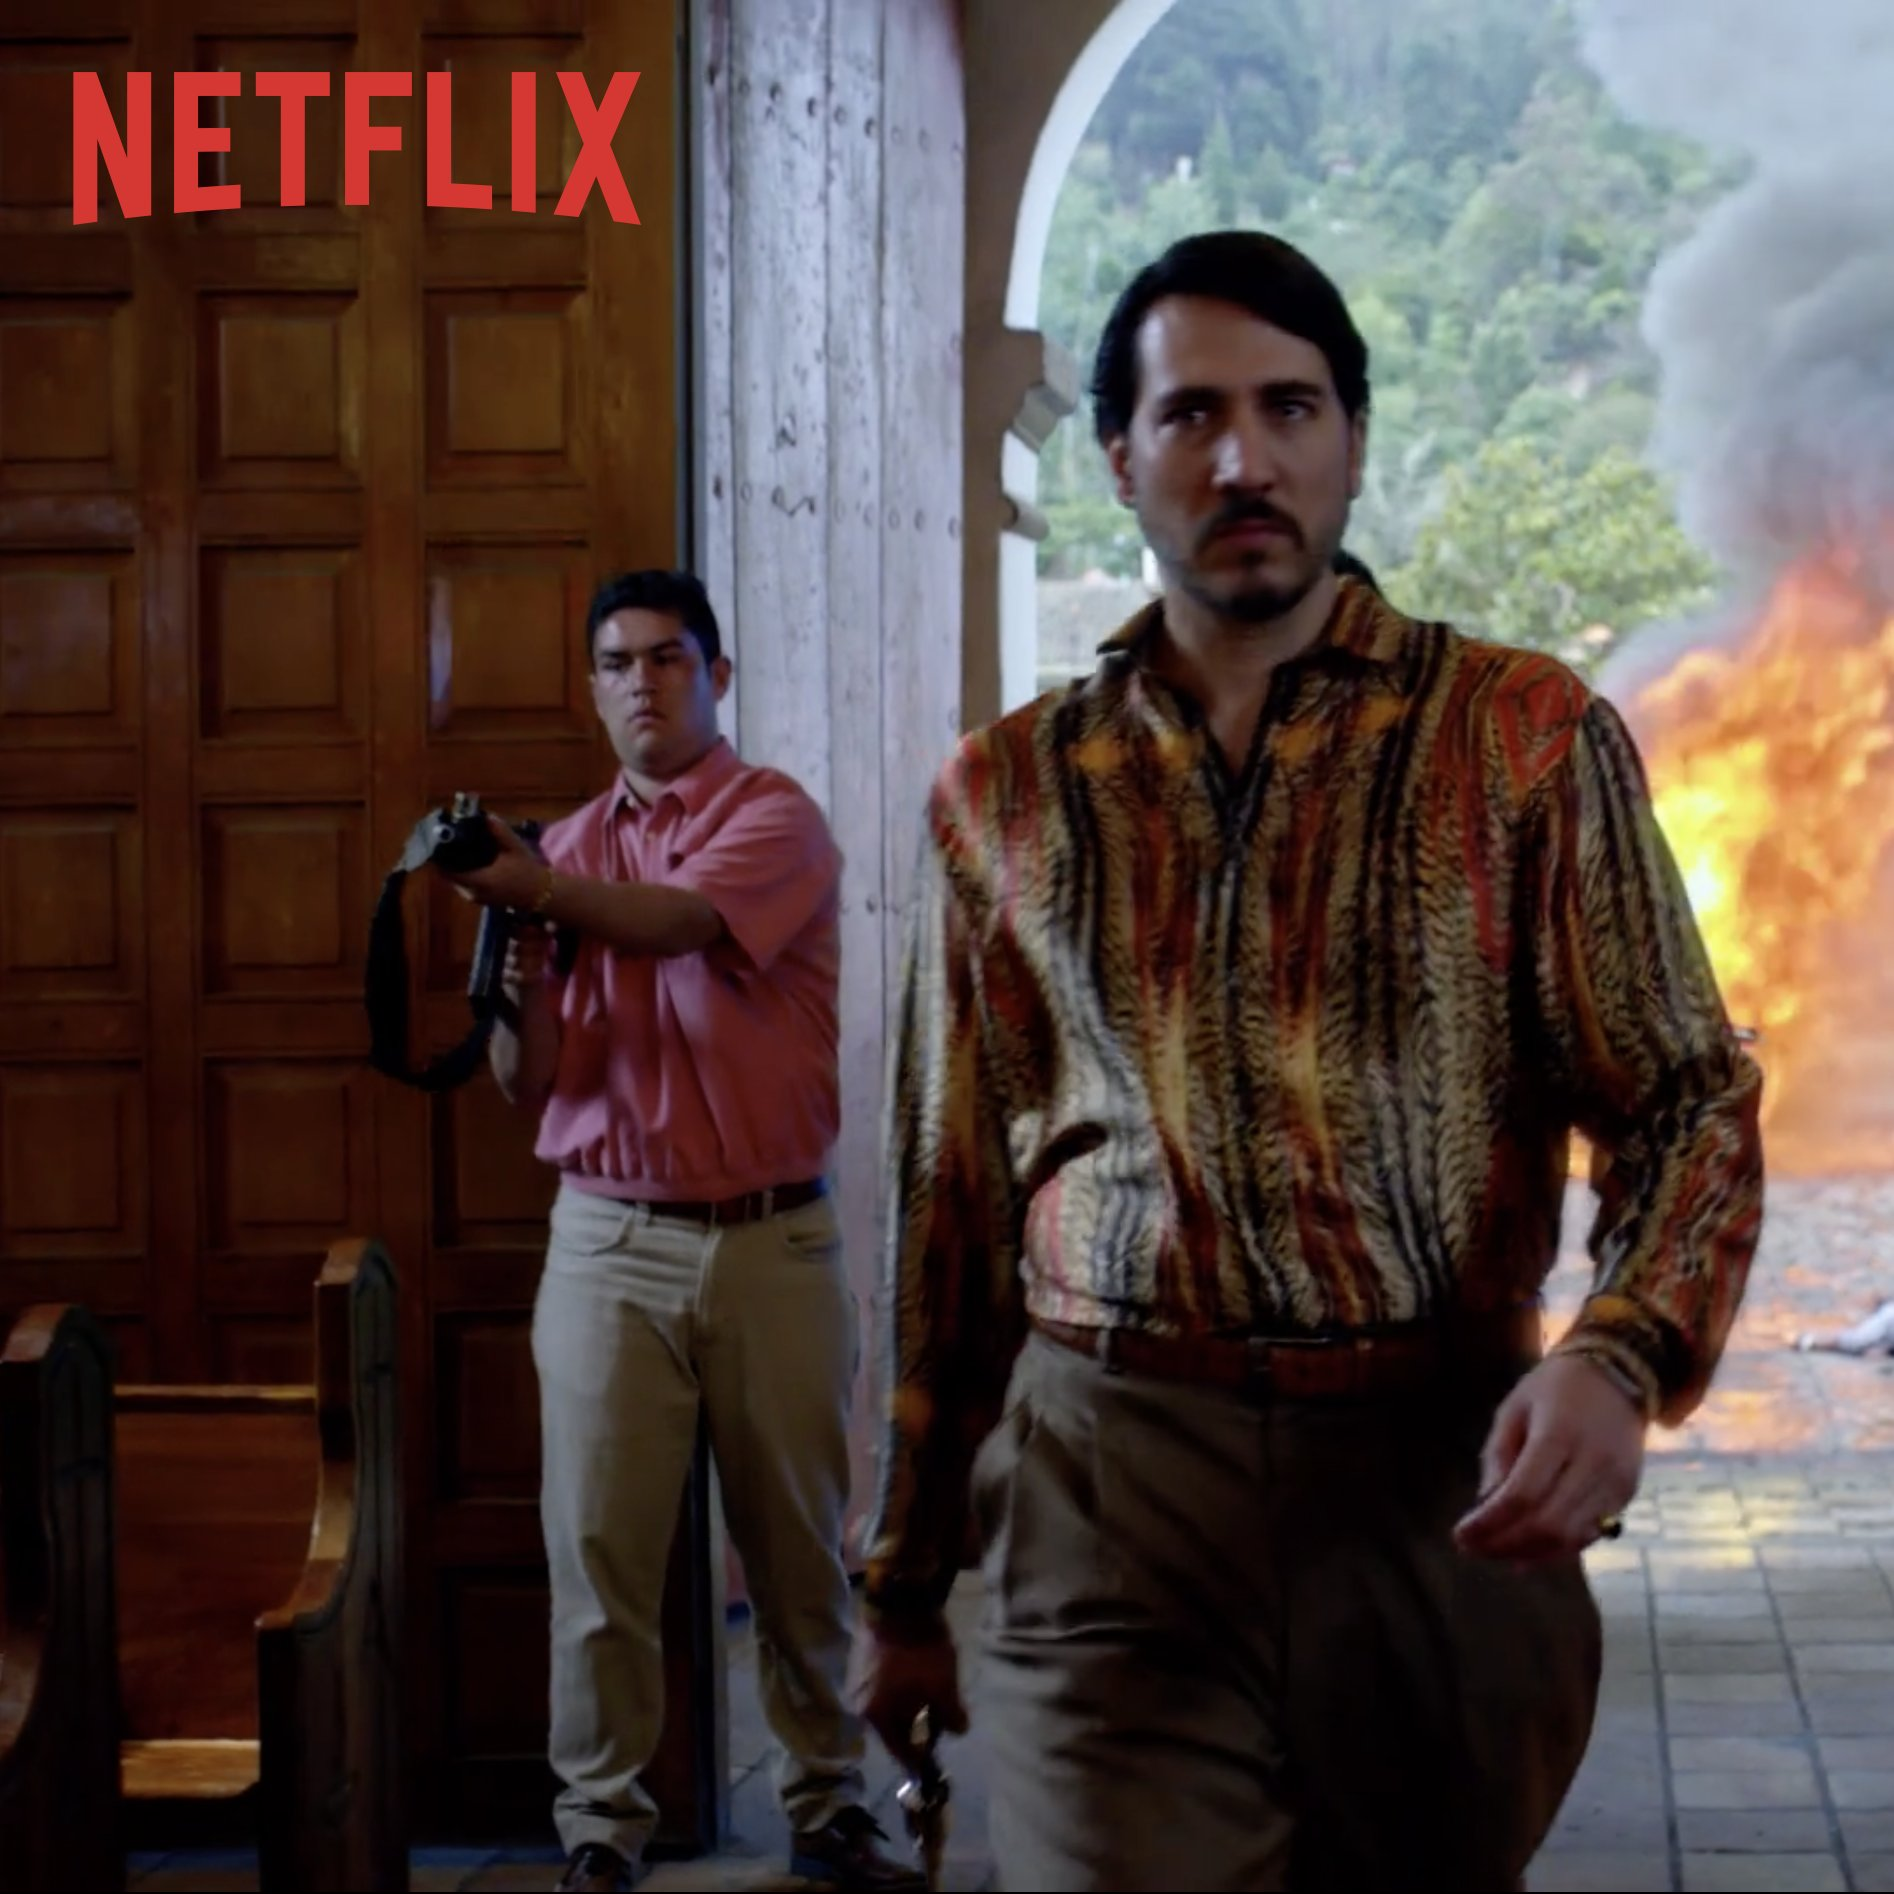 Come for the @NarcosNetflix trailer, stay for the Cypress Hill song. Season 3 arrives September 1st. https://t.co/aDWQX33dfW